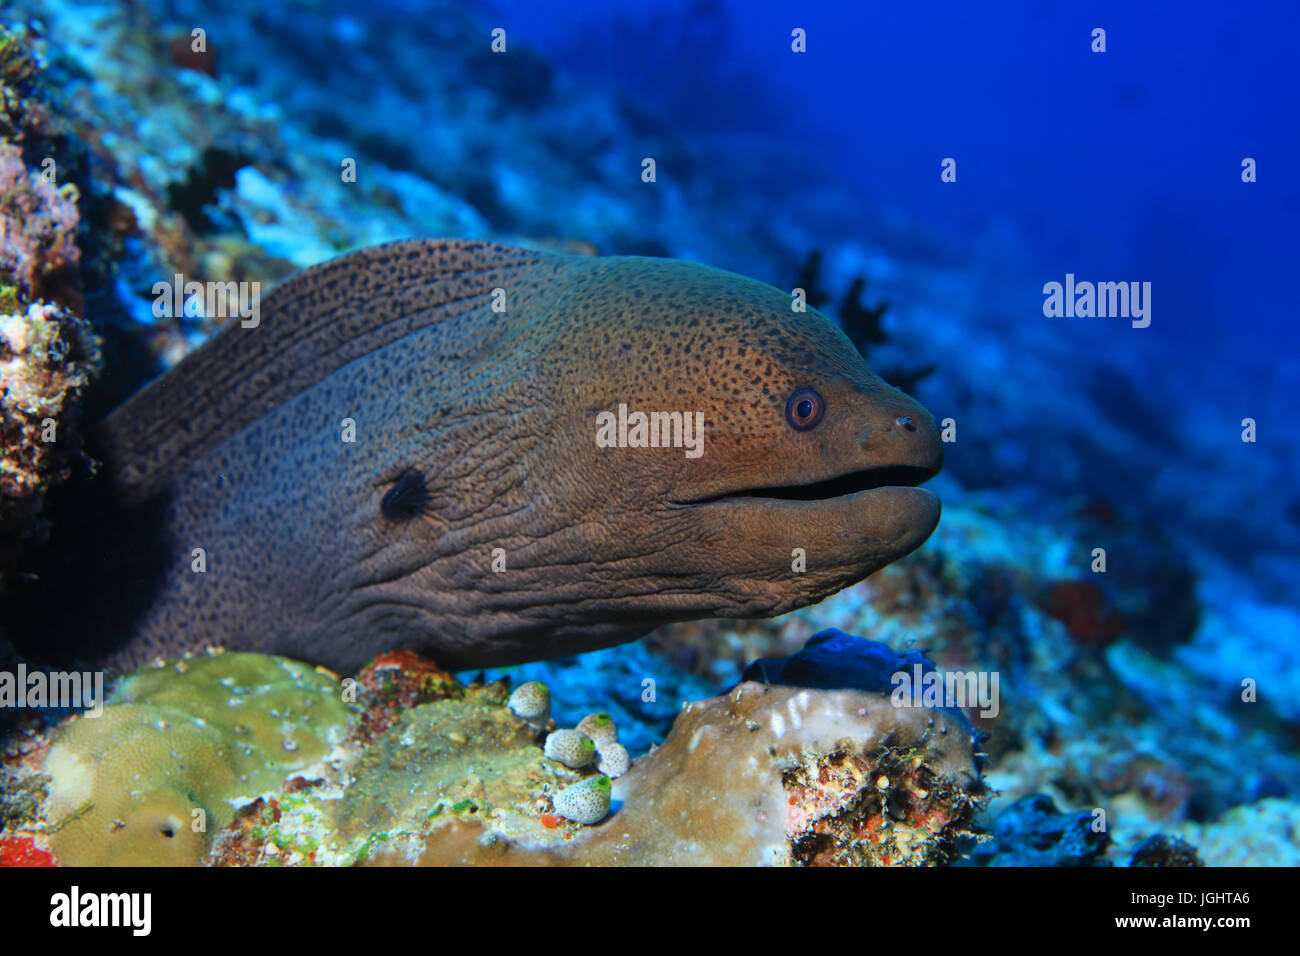 Giant moray eel (Gymnothorax javanicus) underwater in the indian ocean - Stock Image